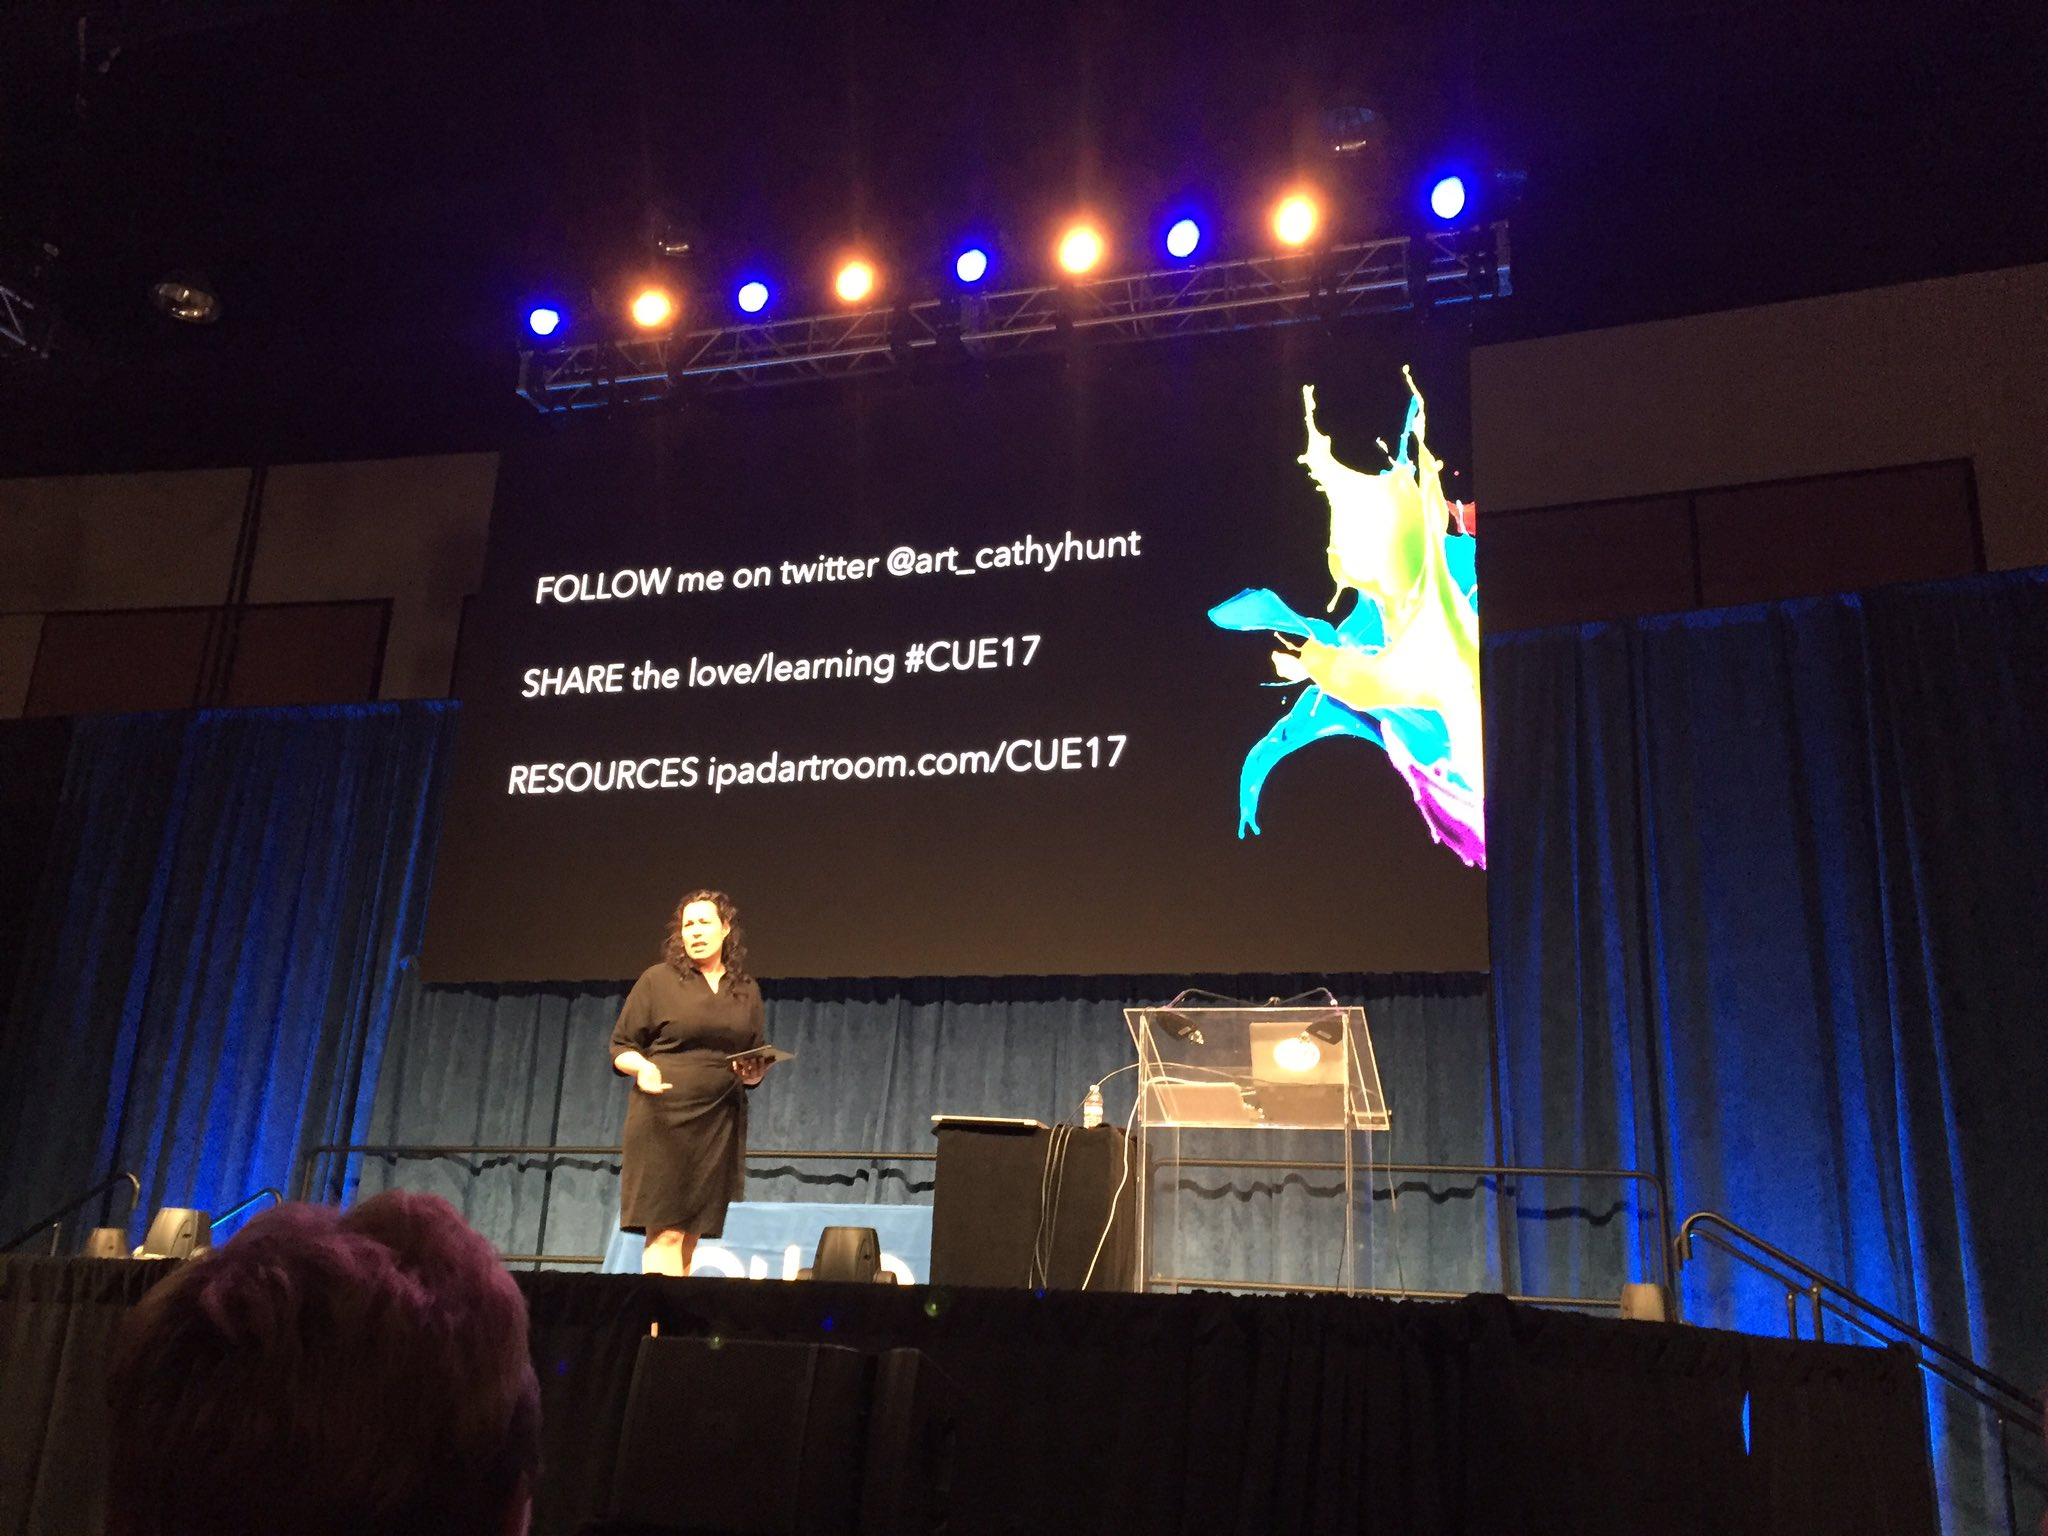 Can't wait to hear about art from the heART from @art_cathyhunt #cue17 https://t.co/4VZ8NsoFrd